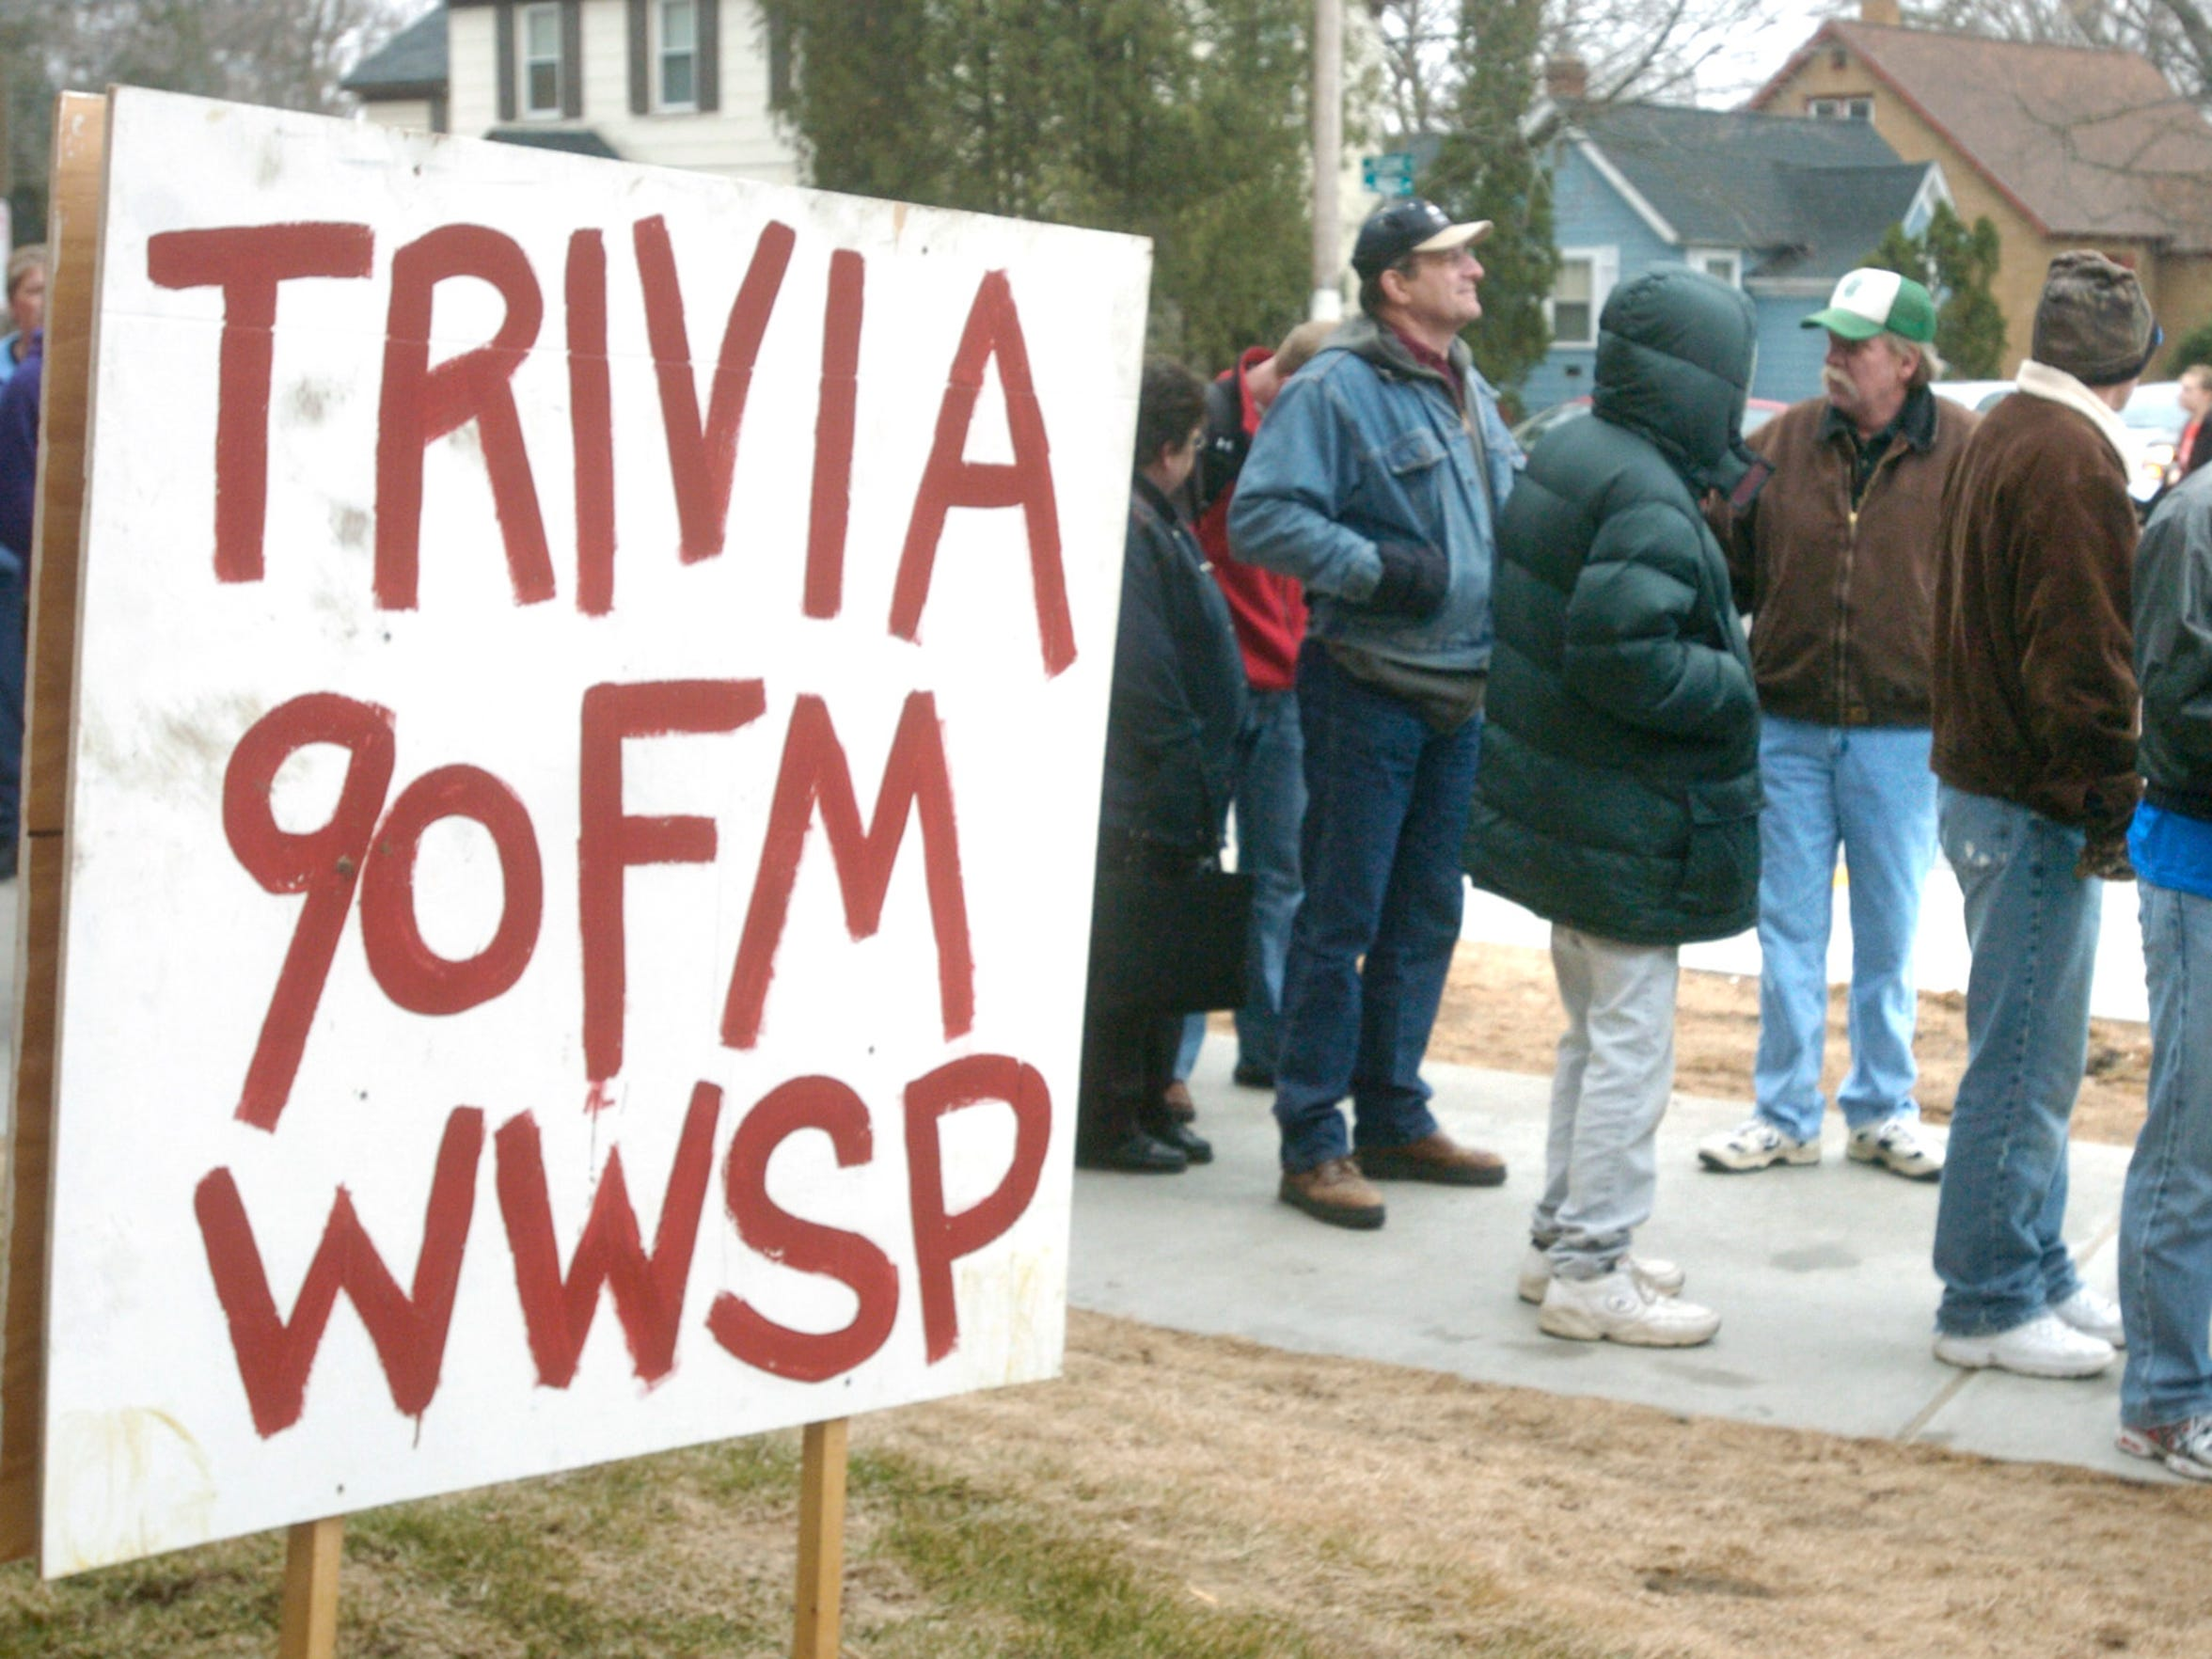 Members of trivia teams wait in line to register for the world's largest trivia contest in this 2008 file photo.